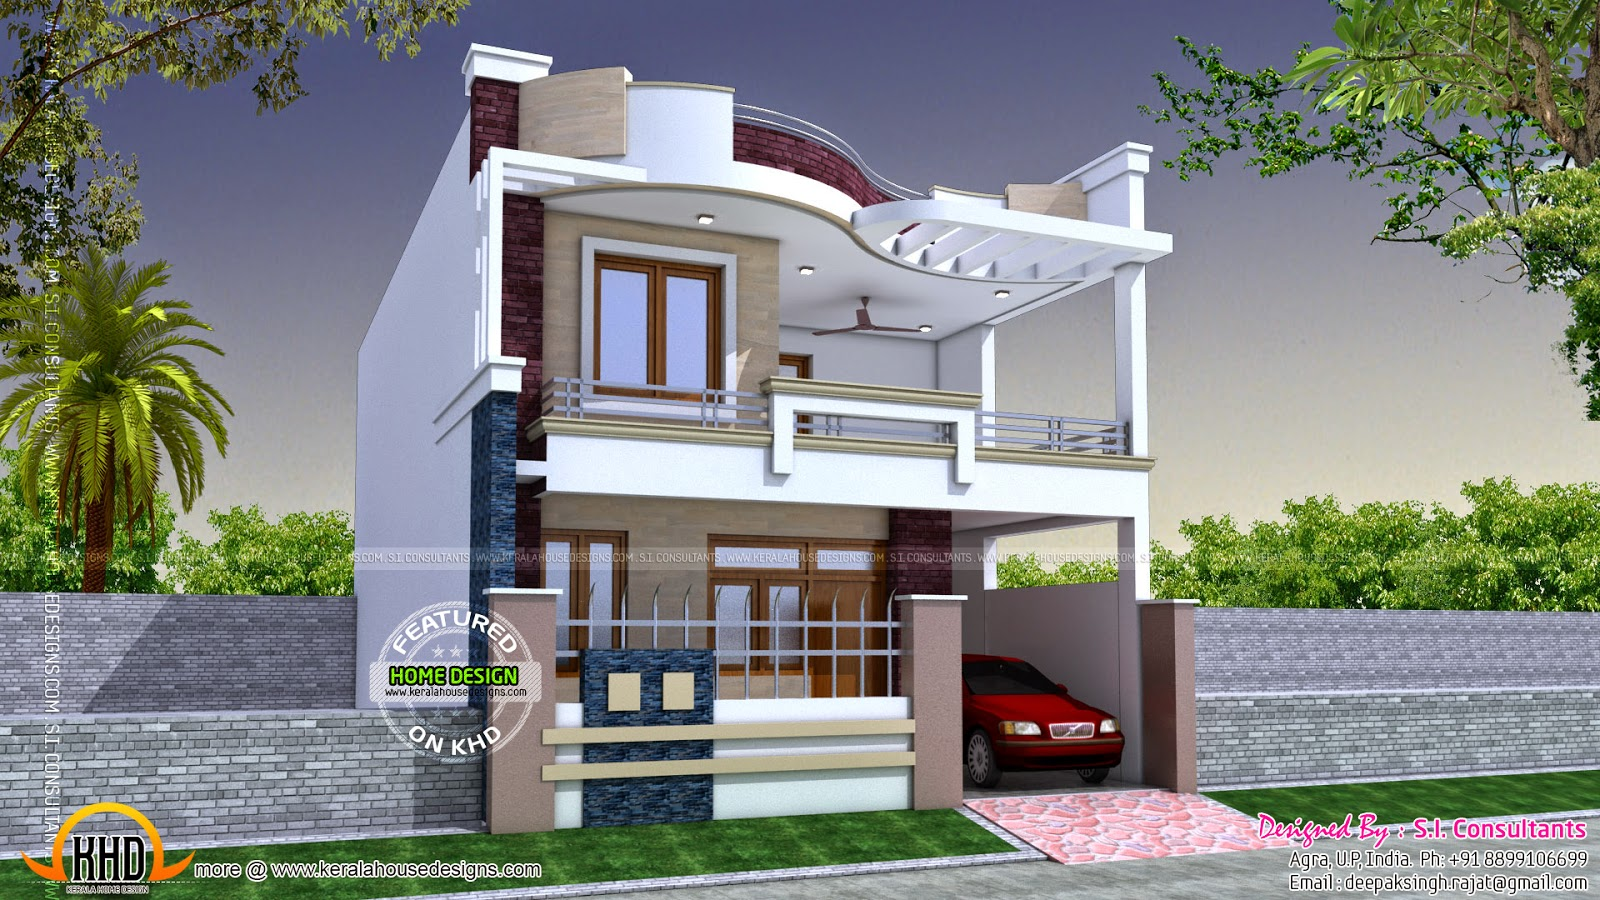 Modern Indian home design